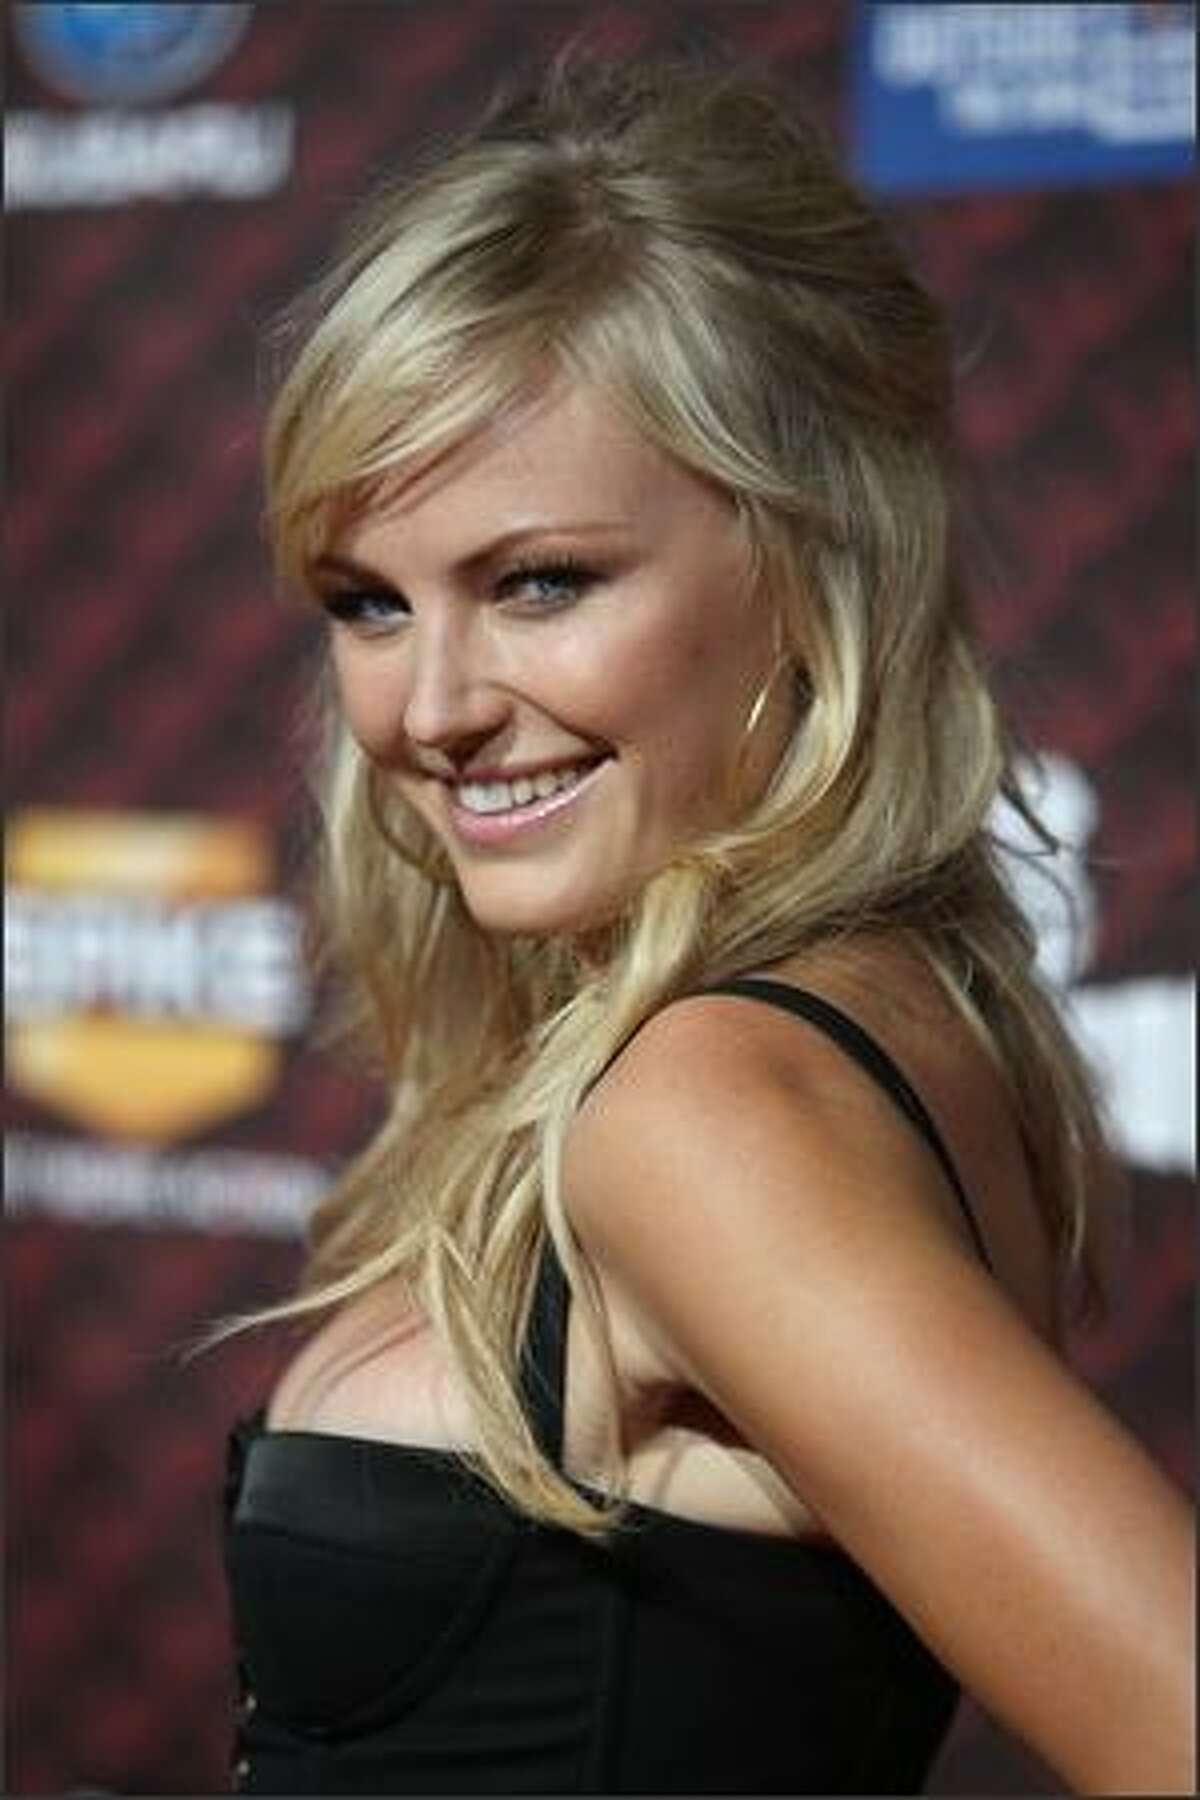 Actress Malin Ackerman arrives at Spike TV's 2008 Scream awards held at the Greek Theater on Saturday in Los Angeles, Calif.